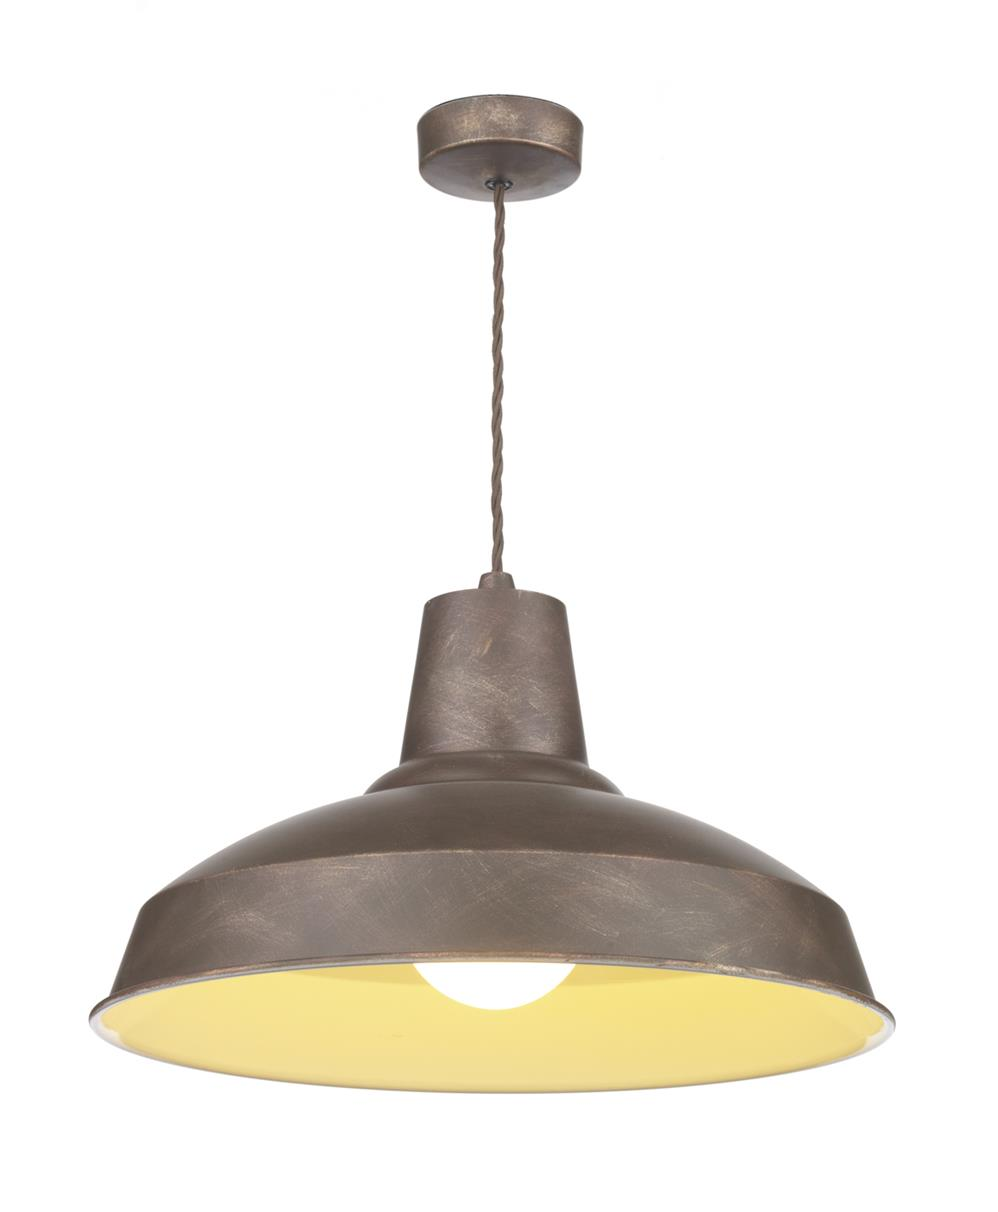 David Hunt Lighting REC0163 Reclamation 1 Light Pendant in Weathered Bronze and white Inner